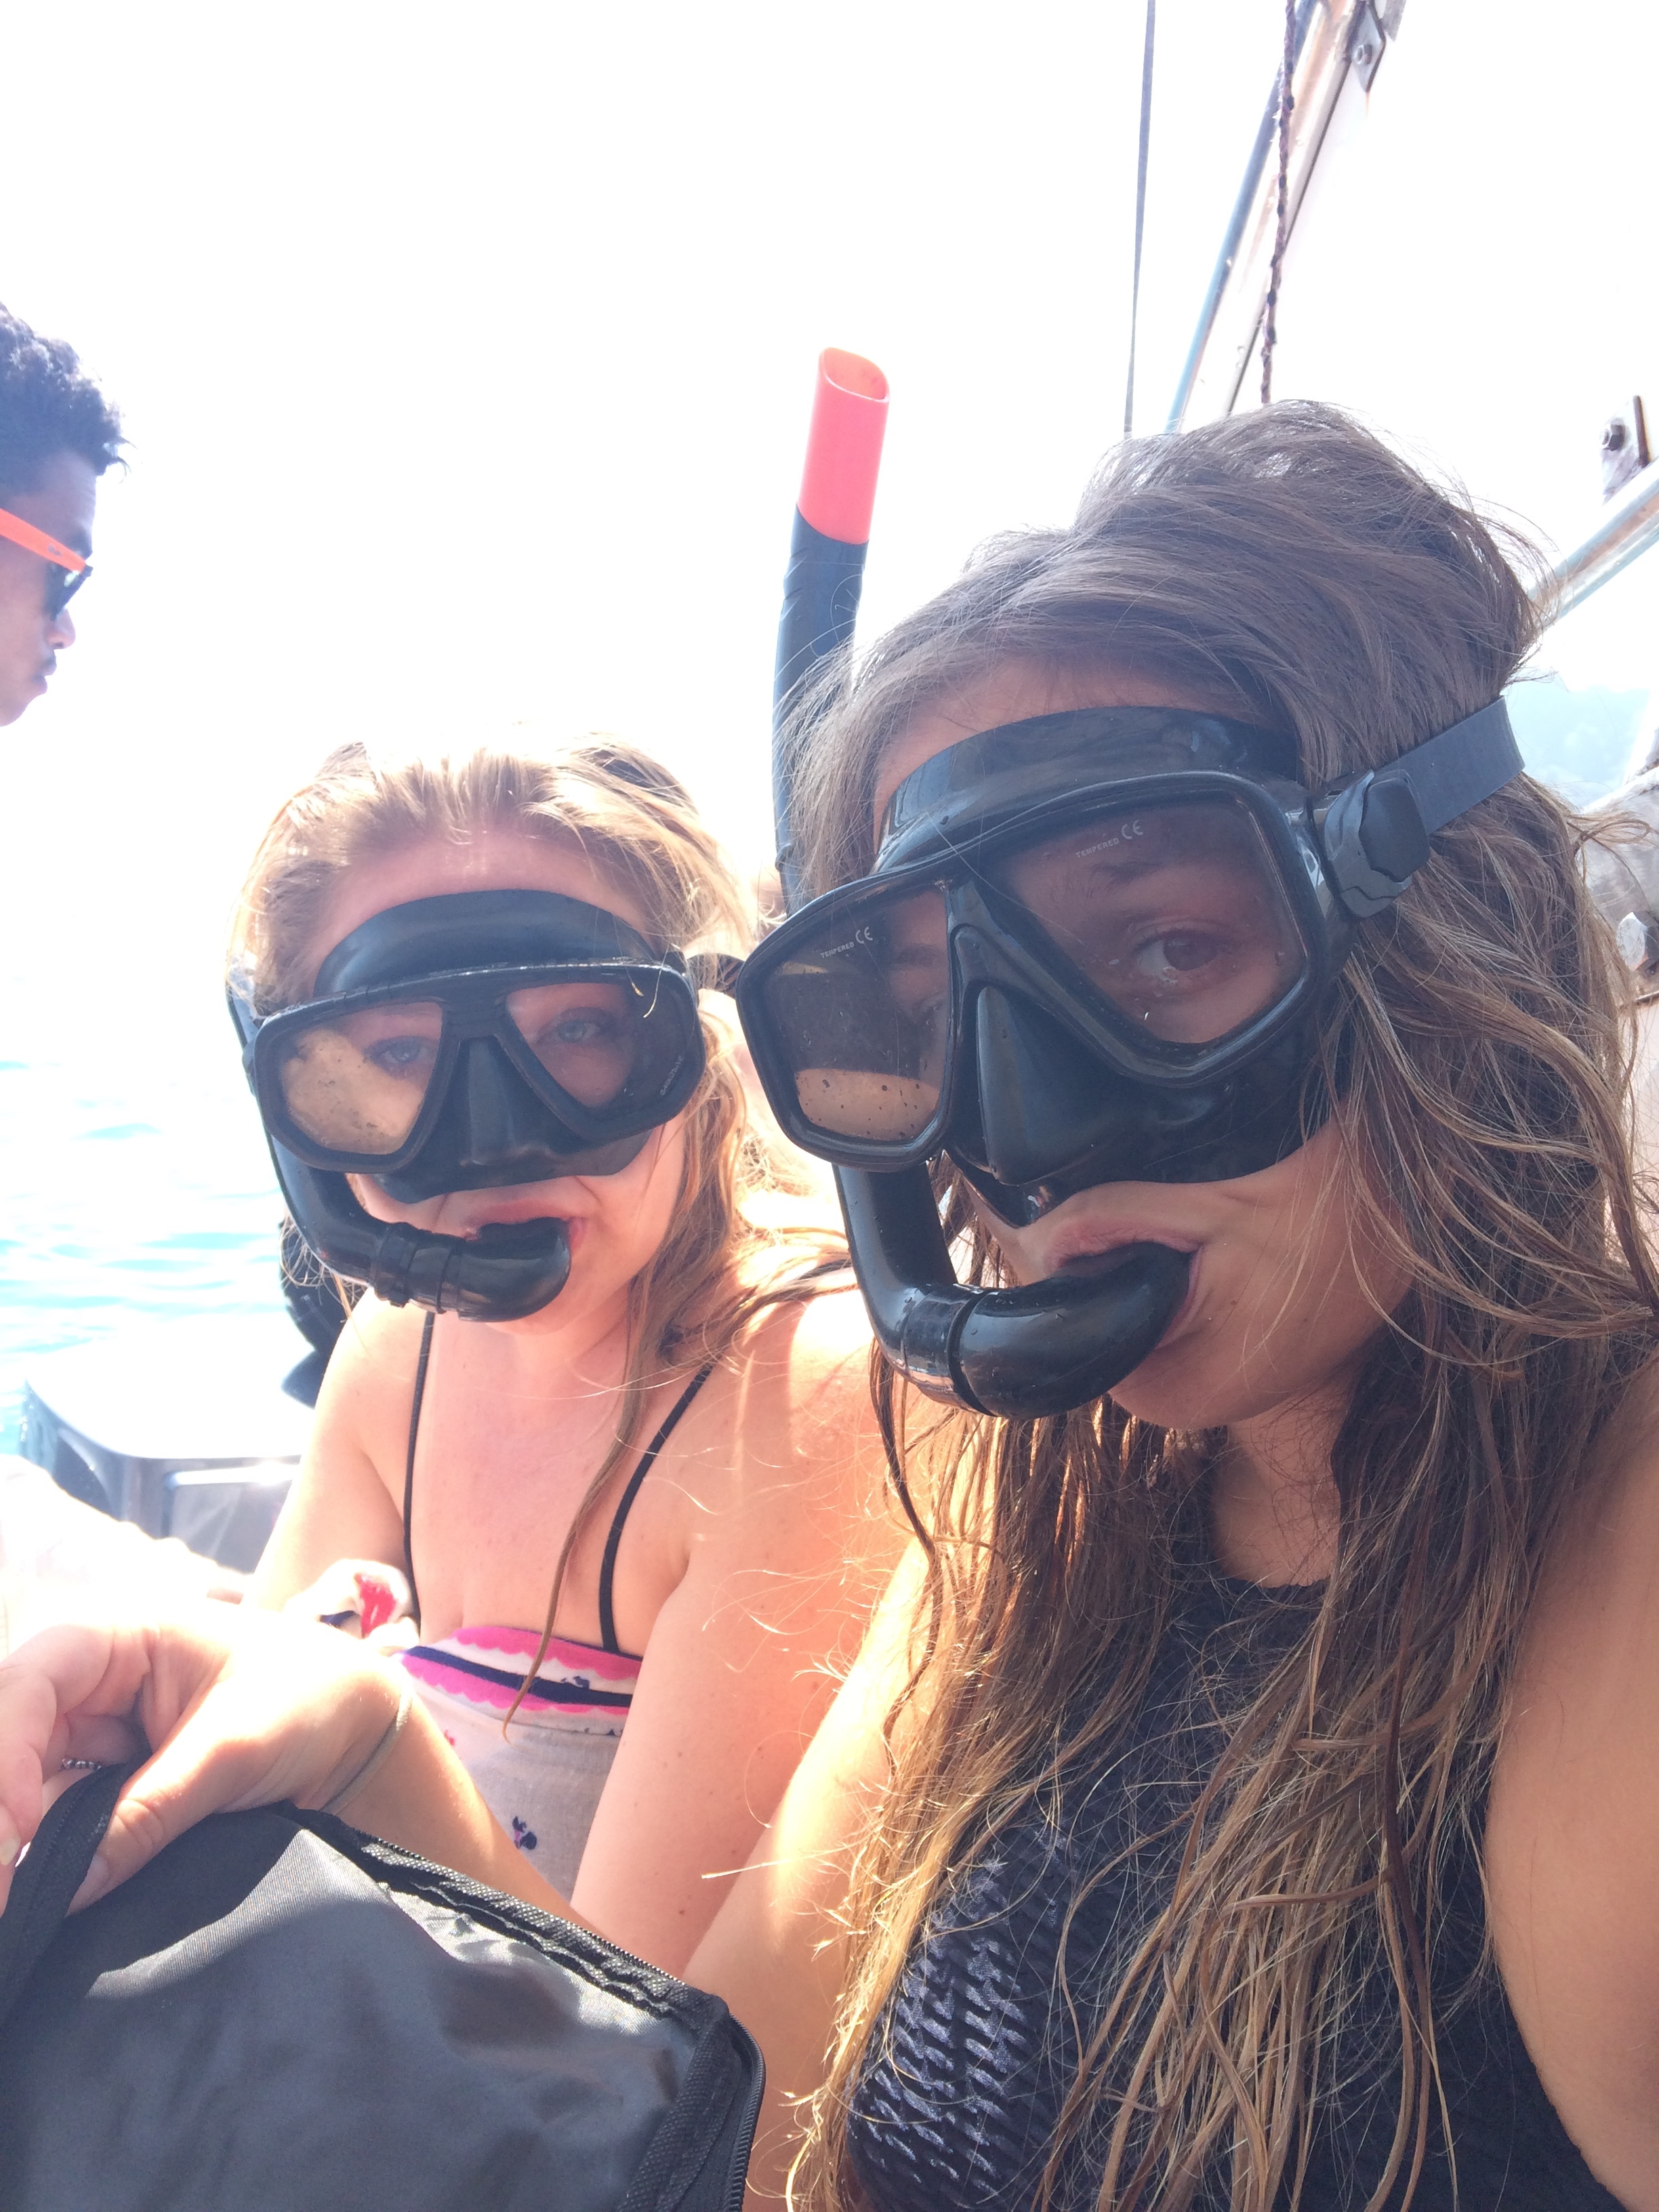 Kathryn and Camilla taking this snorkel business very seriously.